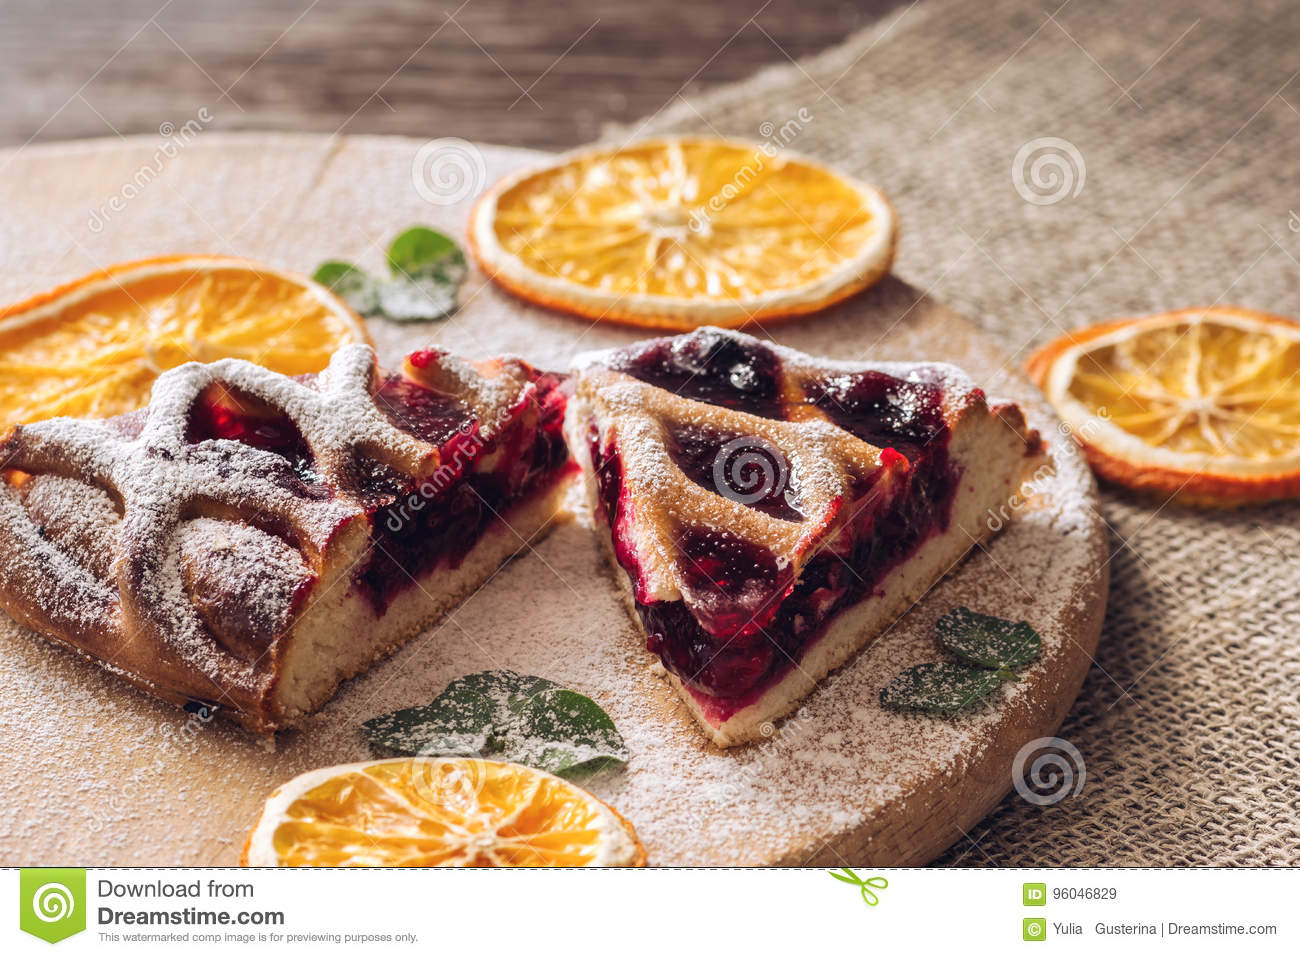 Pie with berries on a wooden table with a cloth napkin decorated with dried oranges